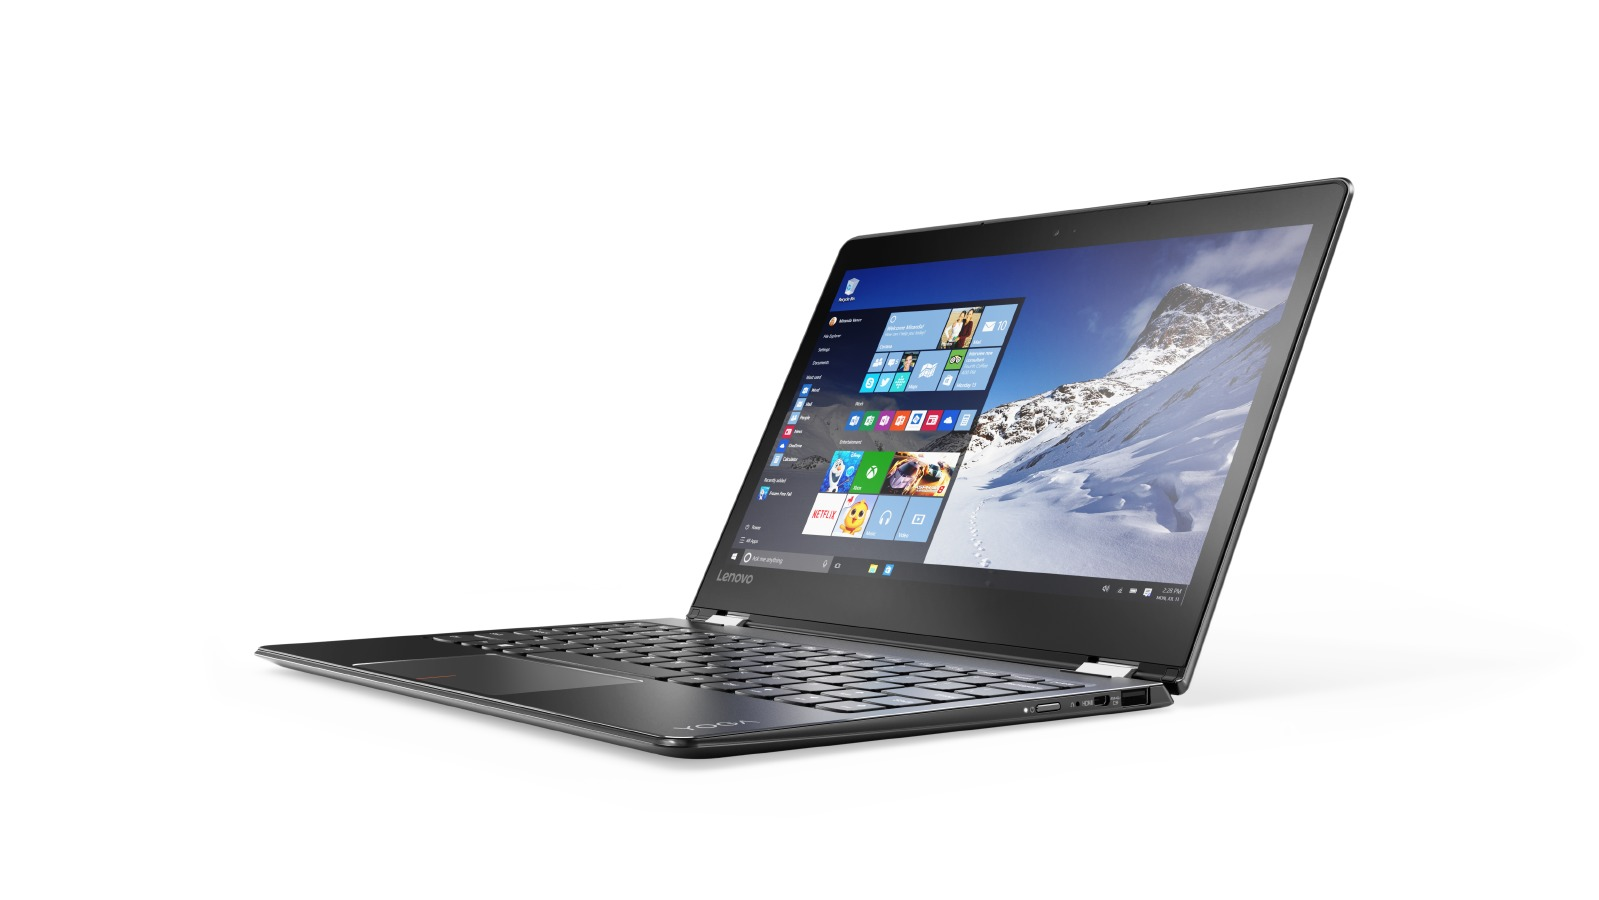 "Lenovo YOGA 710-11IKB Core M3-7Y30 2,60GHz/8GB/SSD 256GB/11,6"" FHD/IPS/multitouch/WIN10 černá 80V60009CK"